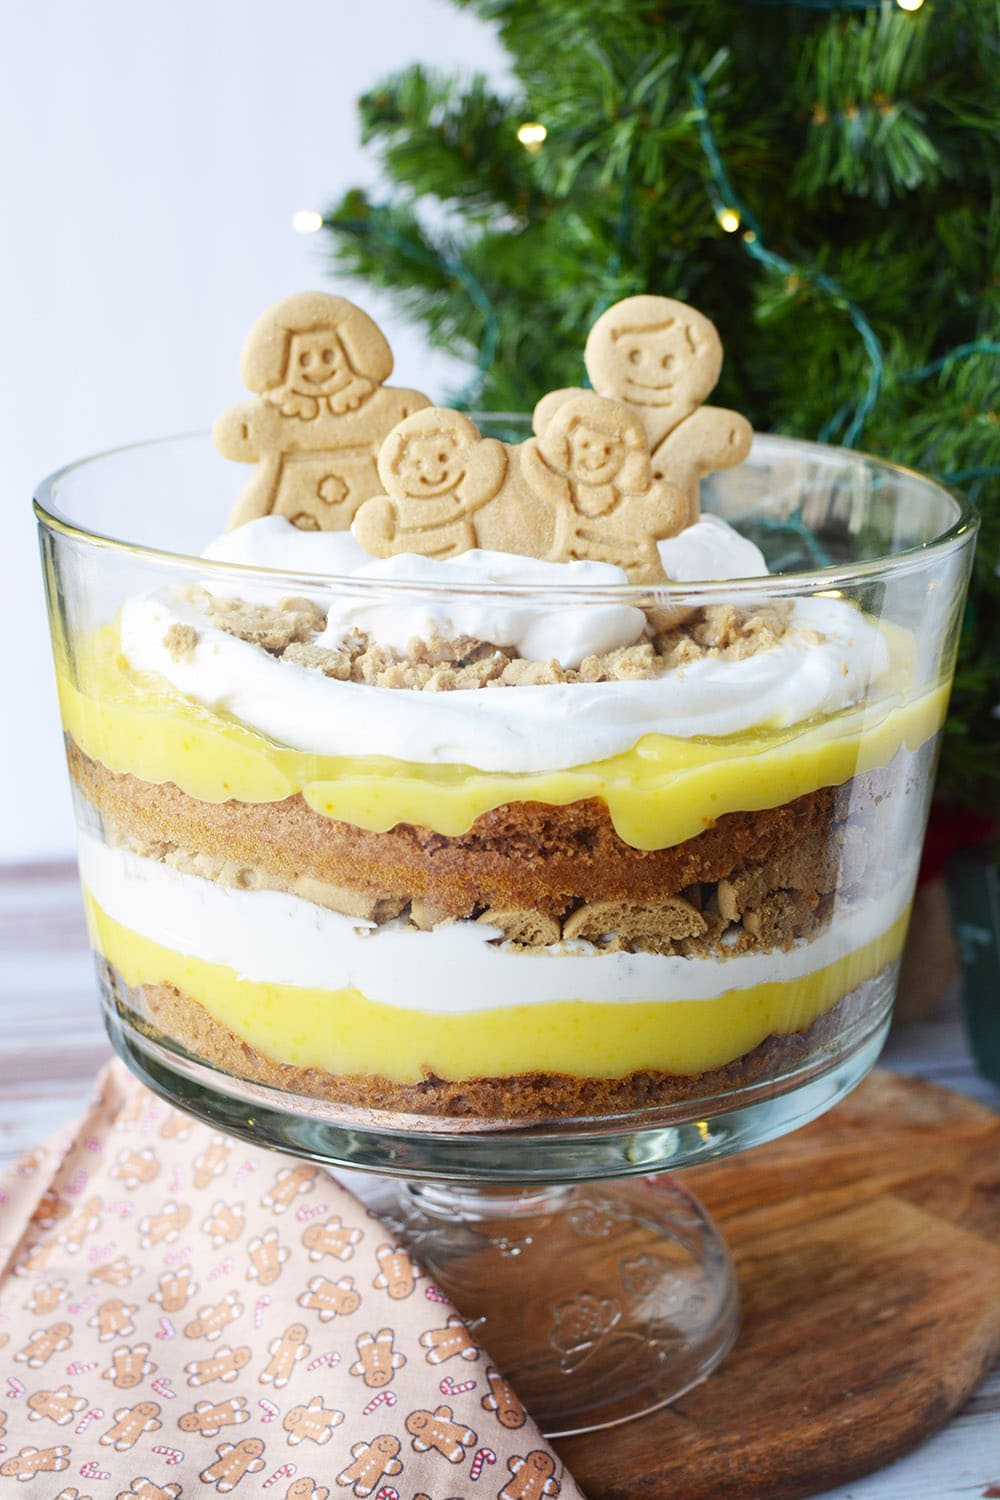 Gingerbread trifle with a Christmas tree on the table.